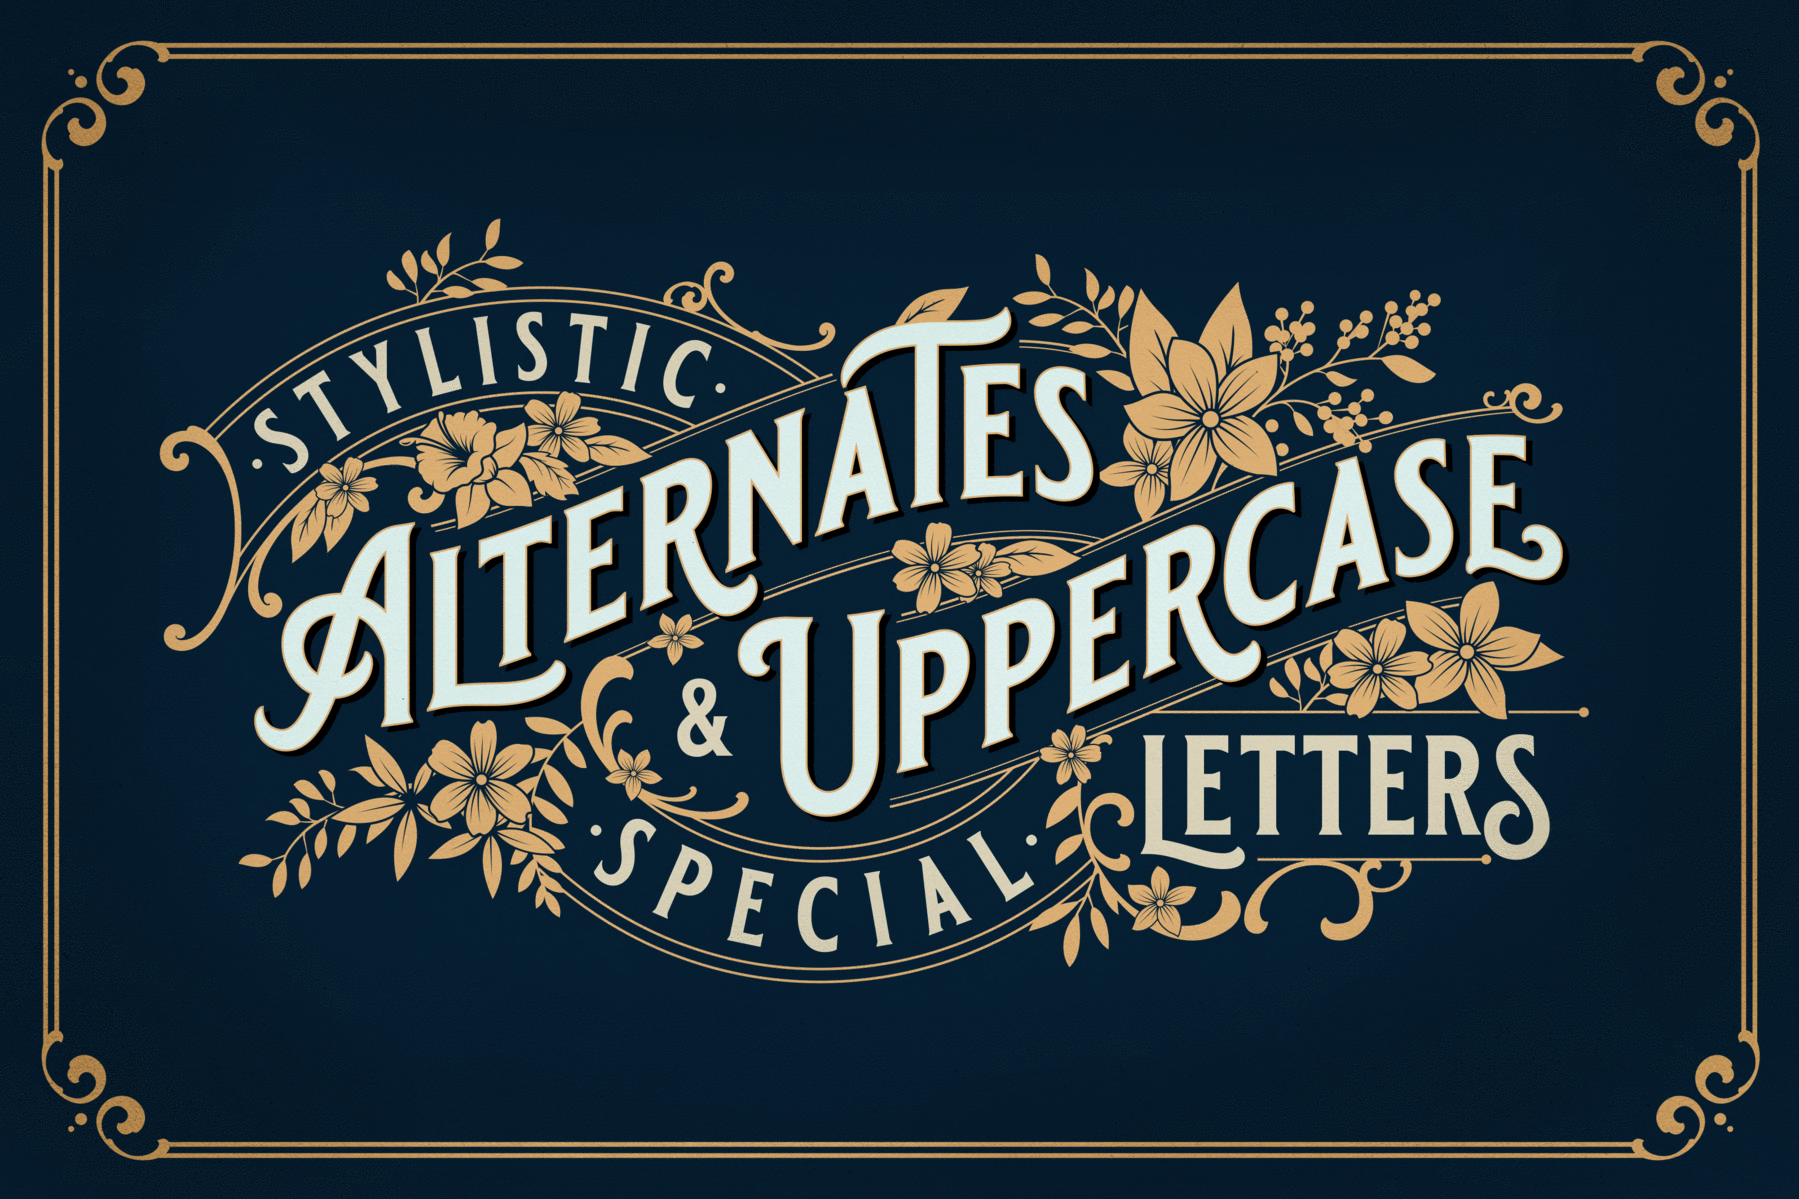 Blackriver Font + Ornaments is part of Vintage logo design, Vintage fonts, Vintage logo, Lettering, Vintage packaging, Font bundles - ornaments (AI, EPS, PDF, afdesign, PNG) Logo Templates (Requires Adobe Illustrator CS or higher) User License (PDF) Font Guide (PDF) Font Features Character set AZ with special uppercase letters Stylistic Alternates Numerals & Punctuation Accented Characters (West Europe) PLEASE NOTEMost of the vintage fonts require advanced graphic software that supports Open Type Features like Adobe Illustrator, InDesign or Photoshop  We can't guarantee complete usability in basic text software like Microsoft Word or similar  After checking out, you will immediately receive an email with a download link to your files  Check out our license agreement here License AgreementFor any other questions please check our FAQ